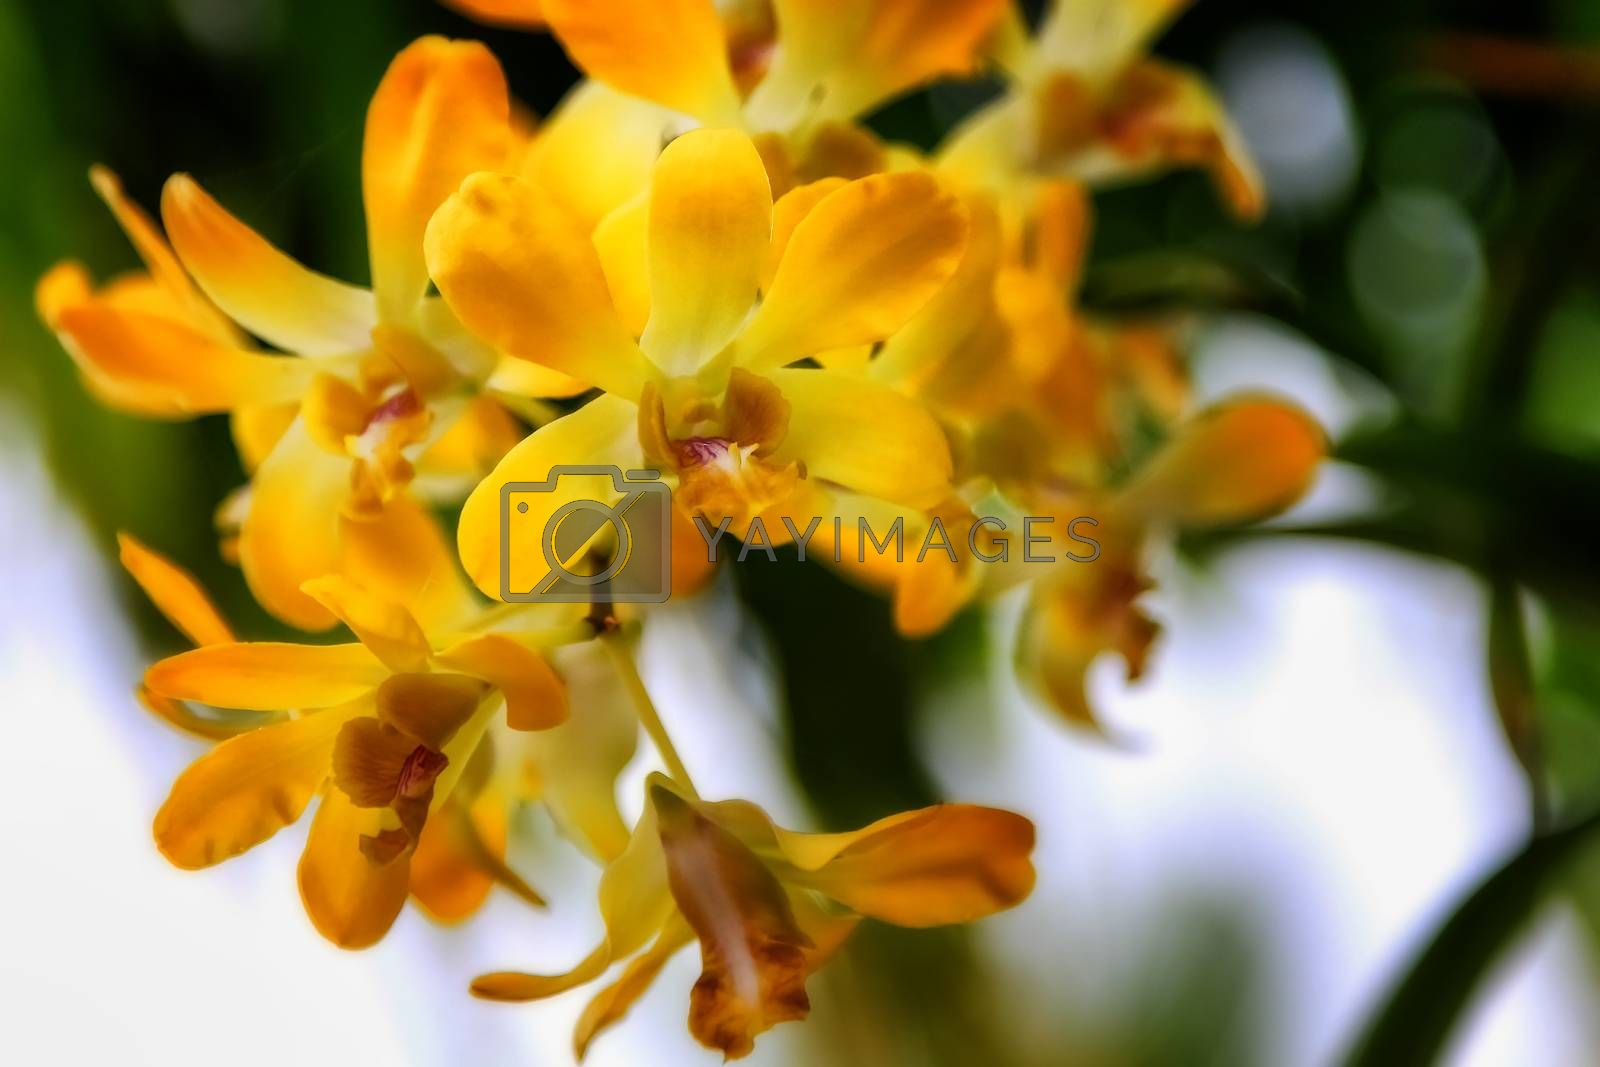 Yellow Orchid in Nature by numberone9018